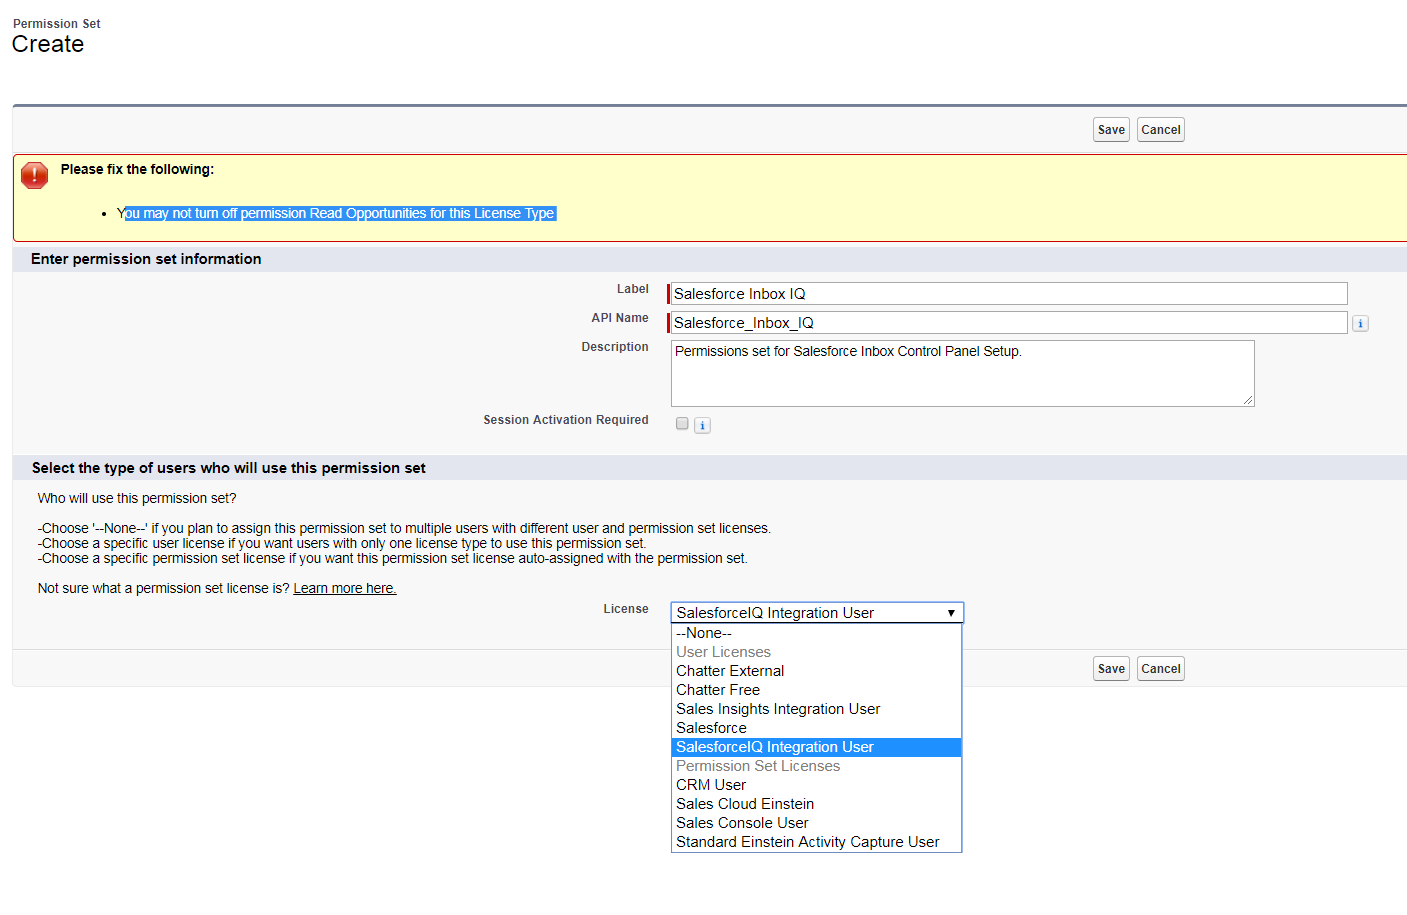 cannot create permissions set for salesforce inbox - Salesforce